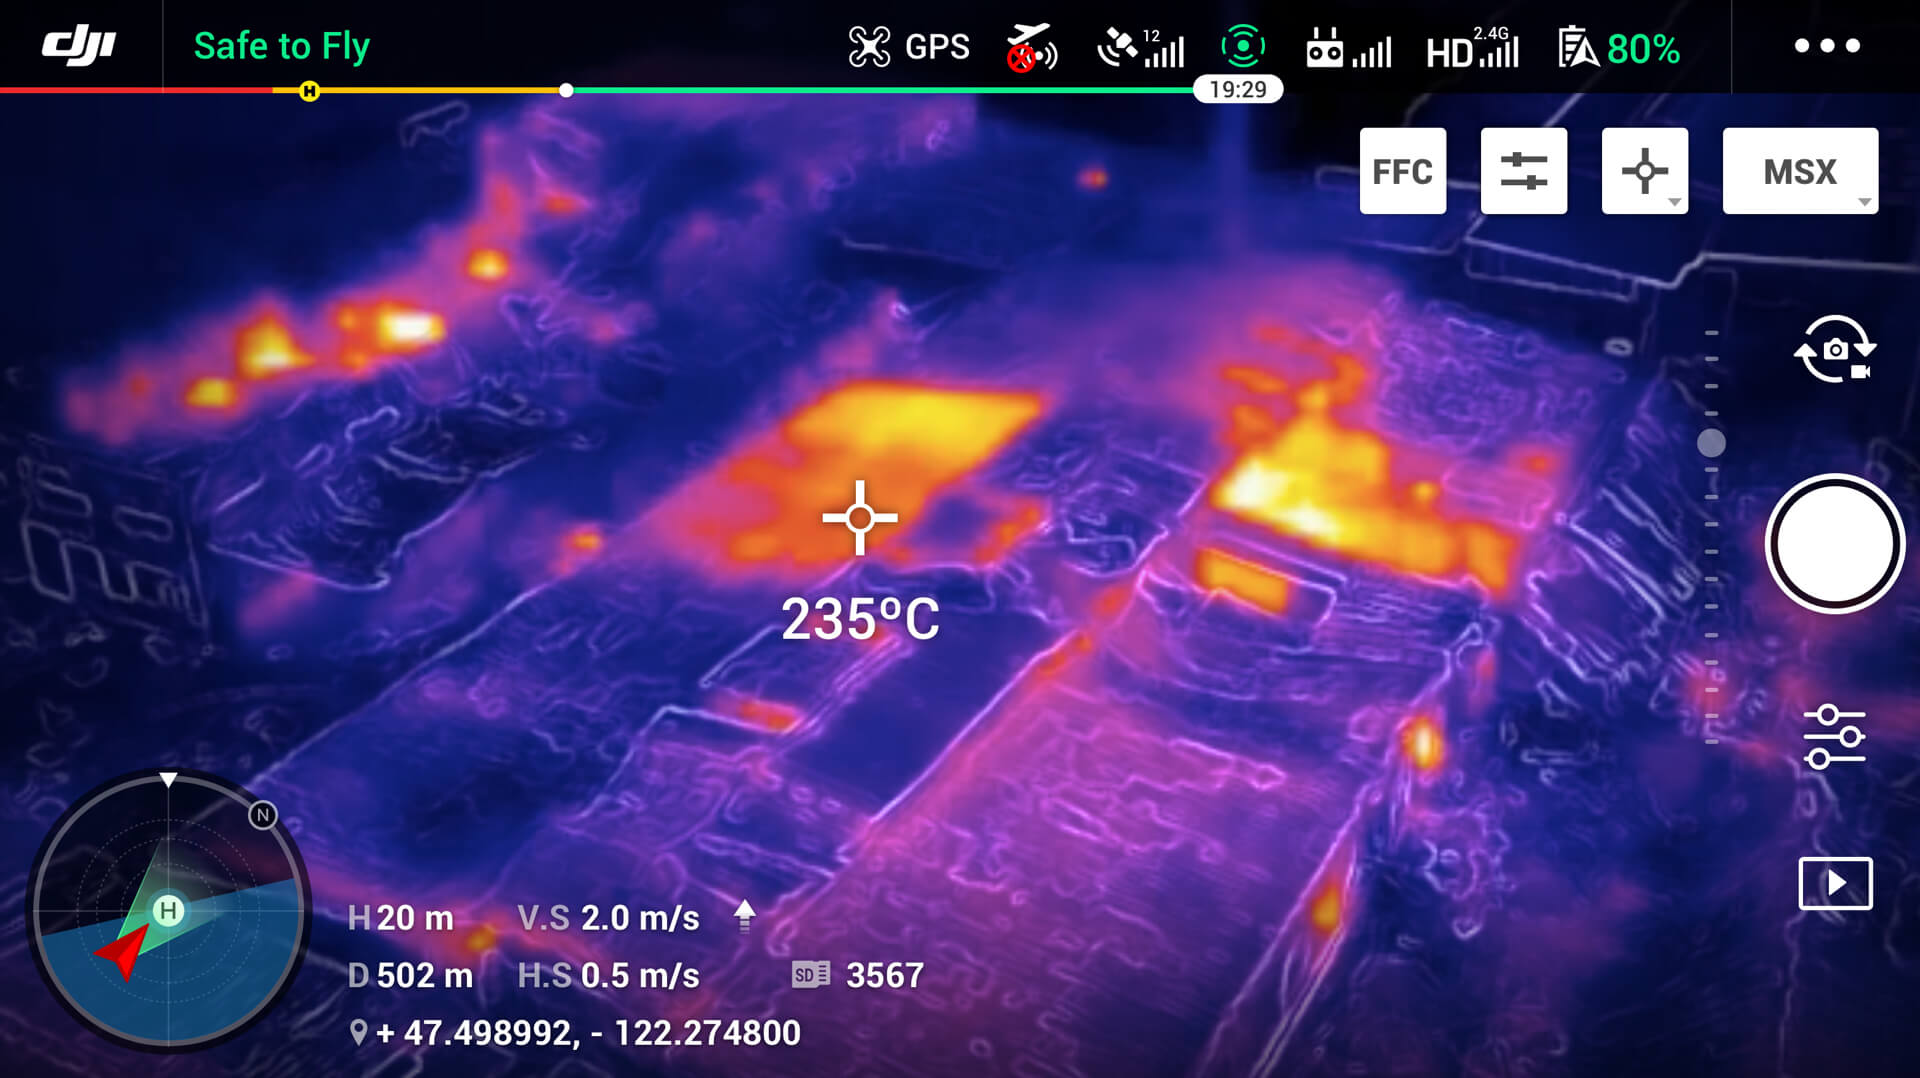 Thermal imagery software helps assess hotspots and pinpoint danger zones.